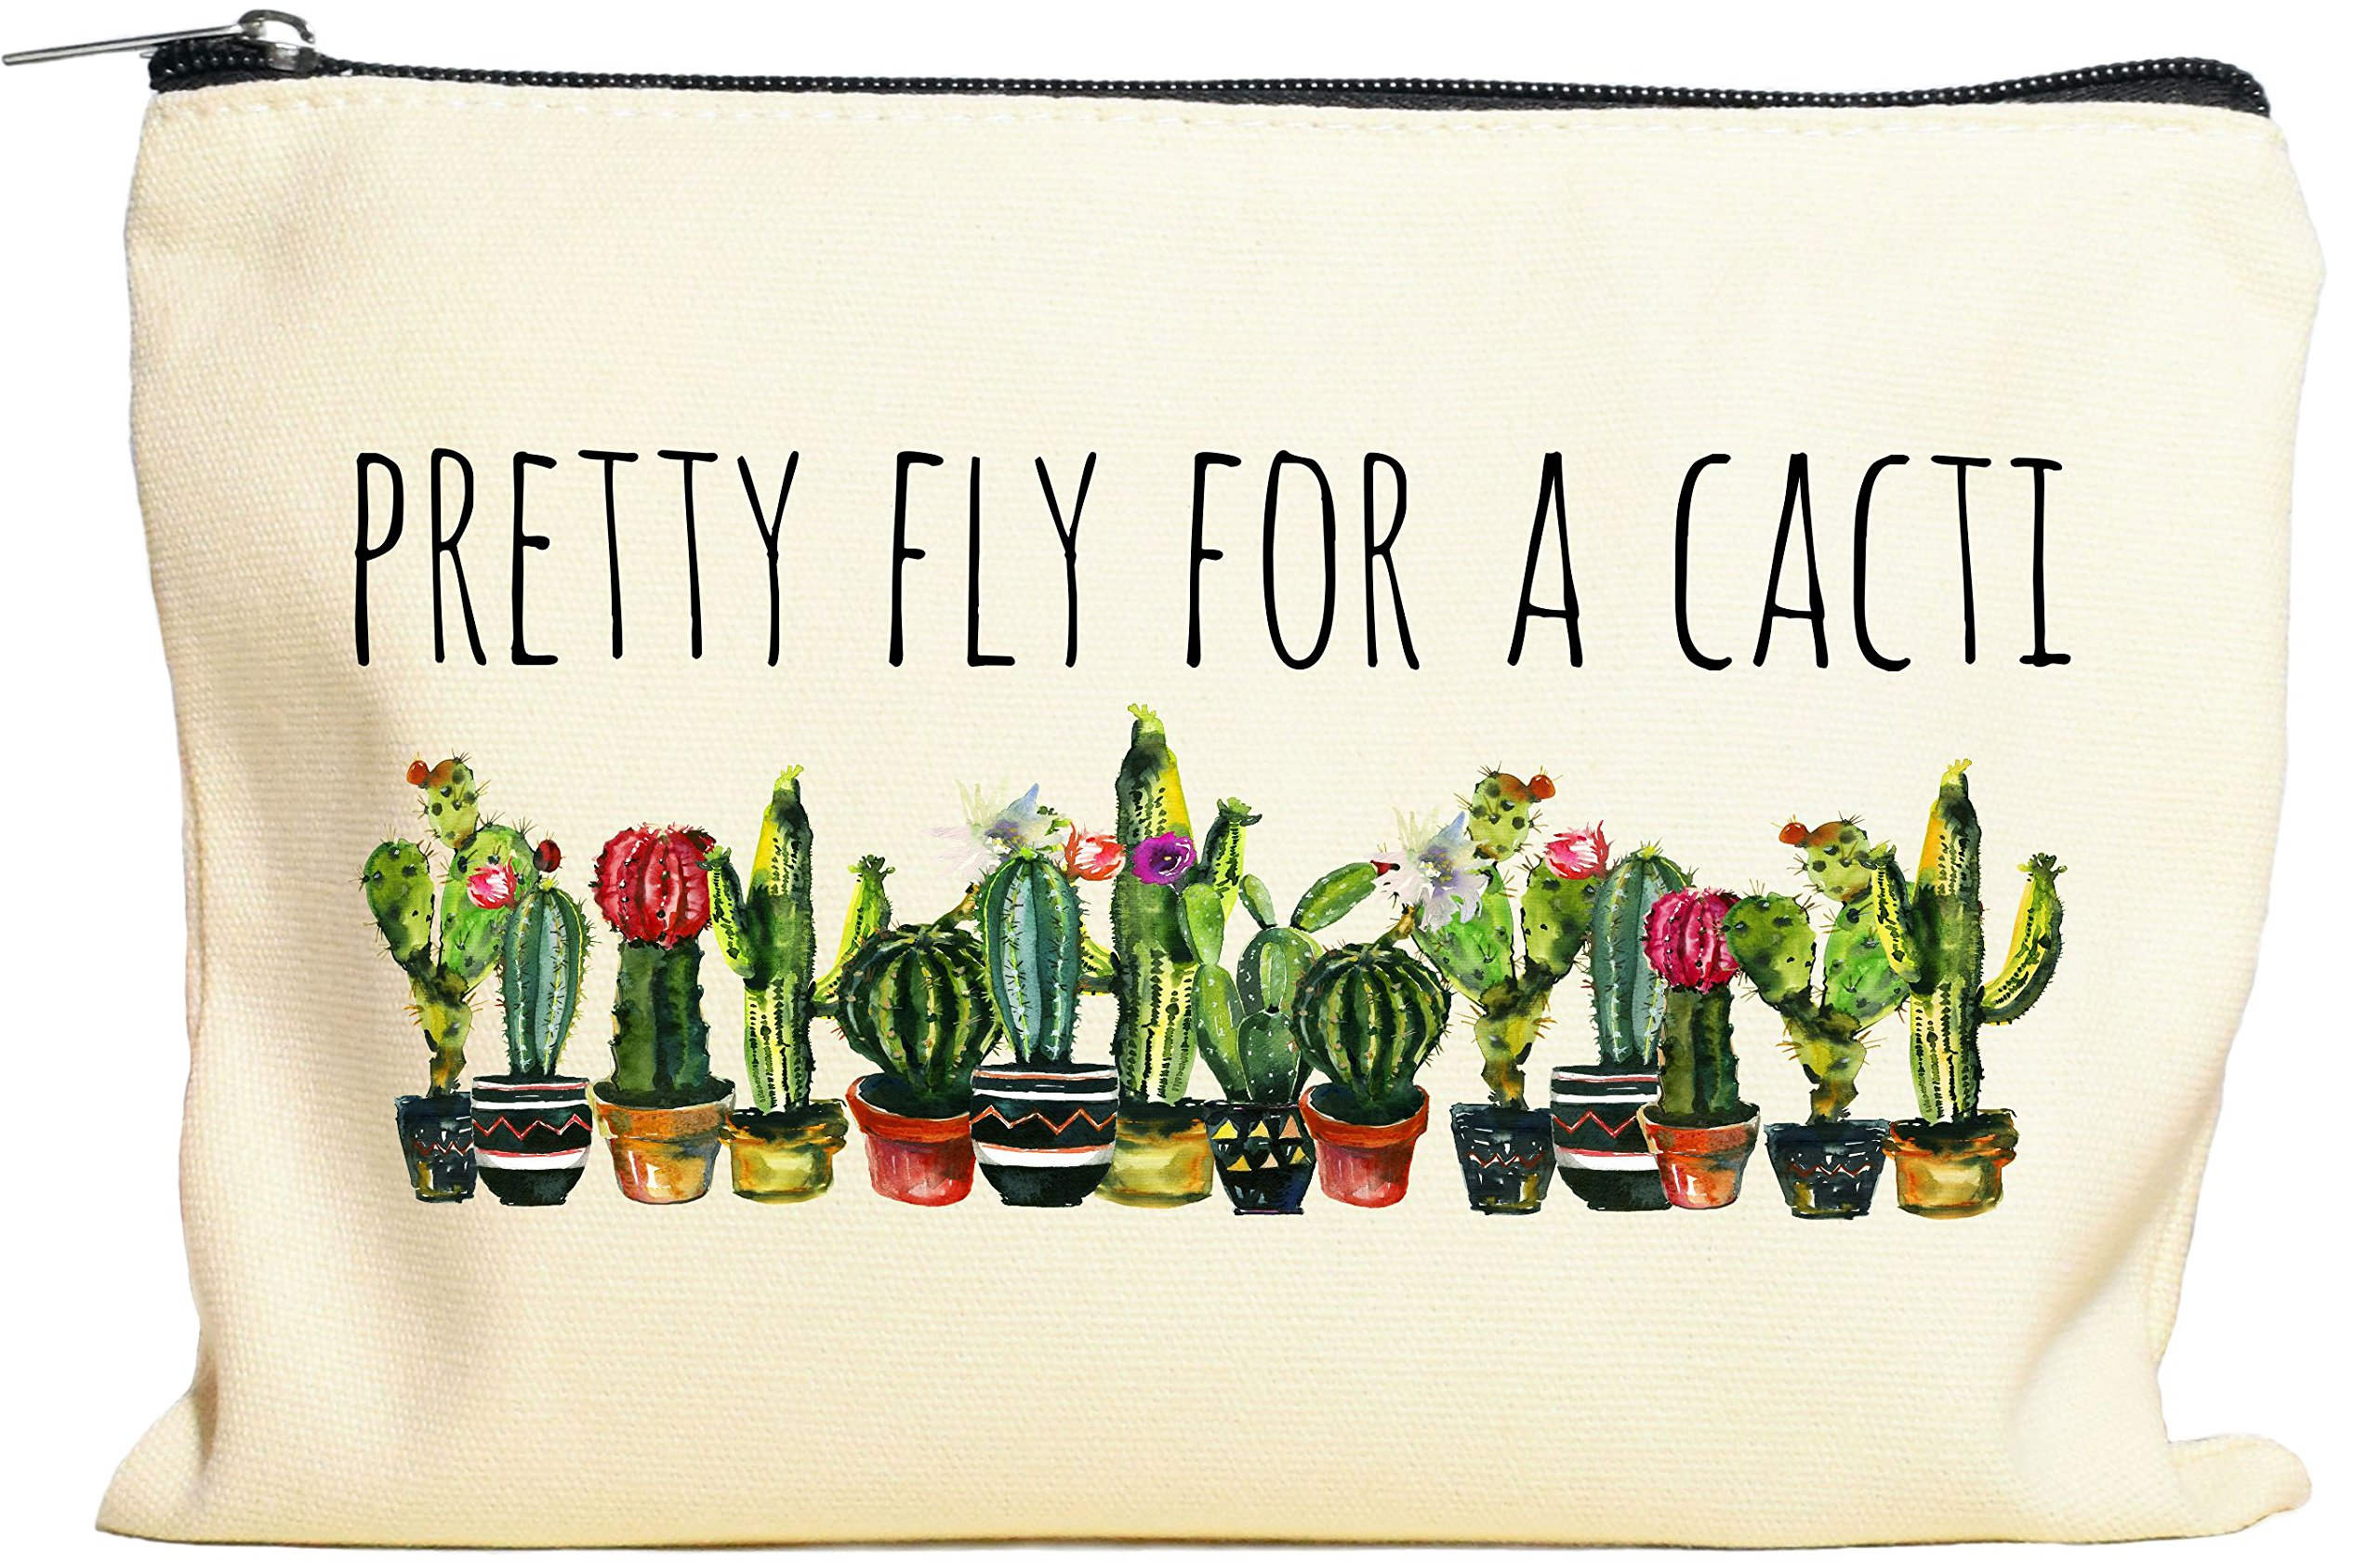 Pretty Fly For A Cacti Makeup Bag, Cactus Gift For Women, Cactus Gift, Succulent Plant Gift, Canvas Bag